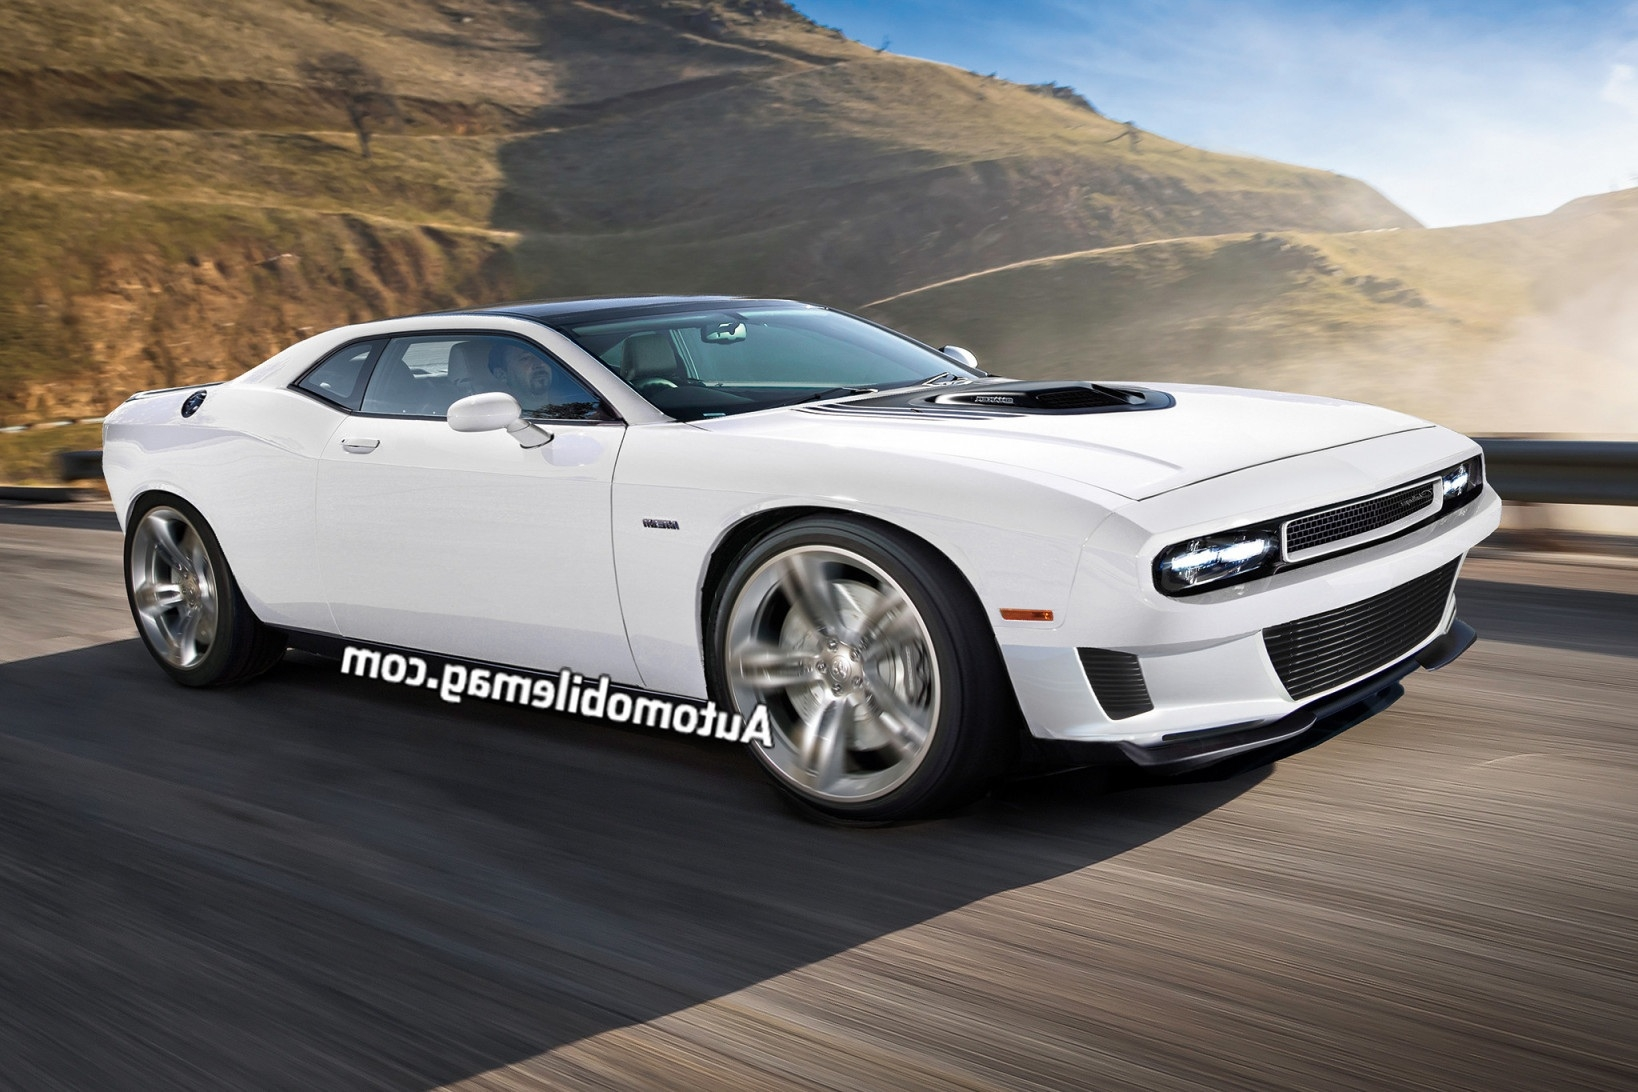 78 New New Dodge Cars For 2020 New Concept for New Dodge Cars For 2020